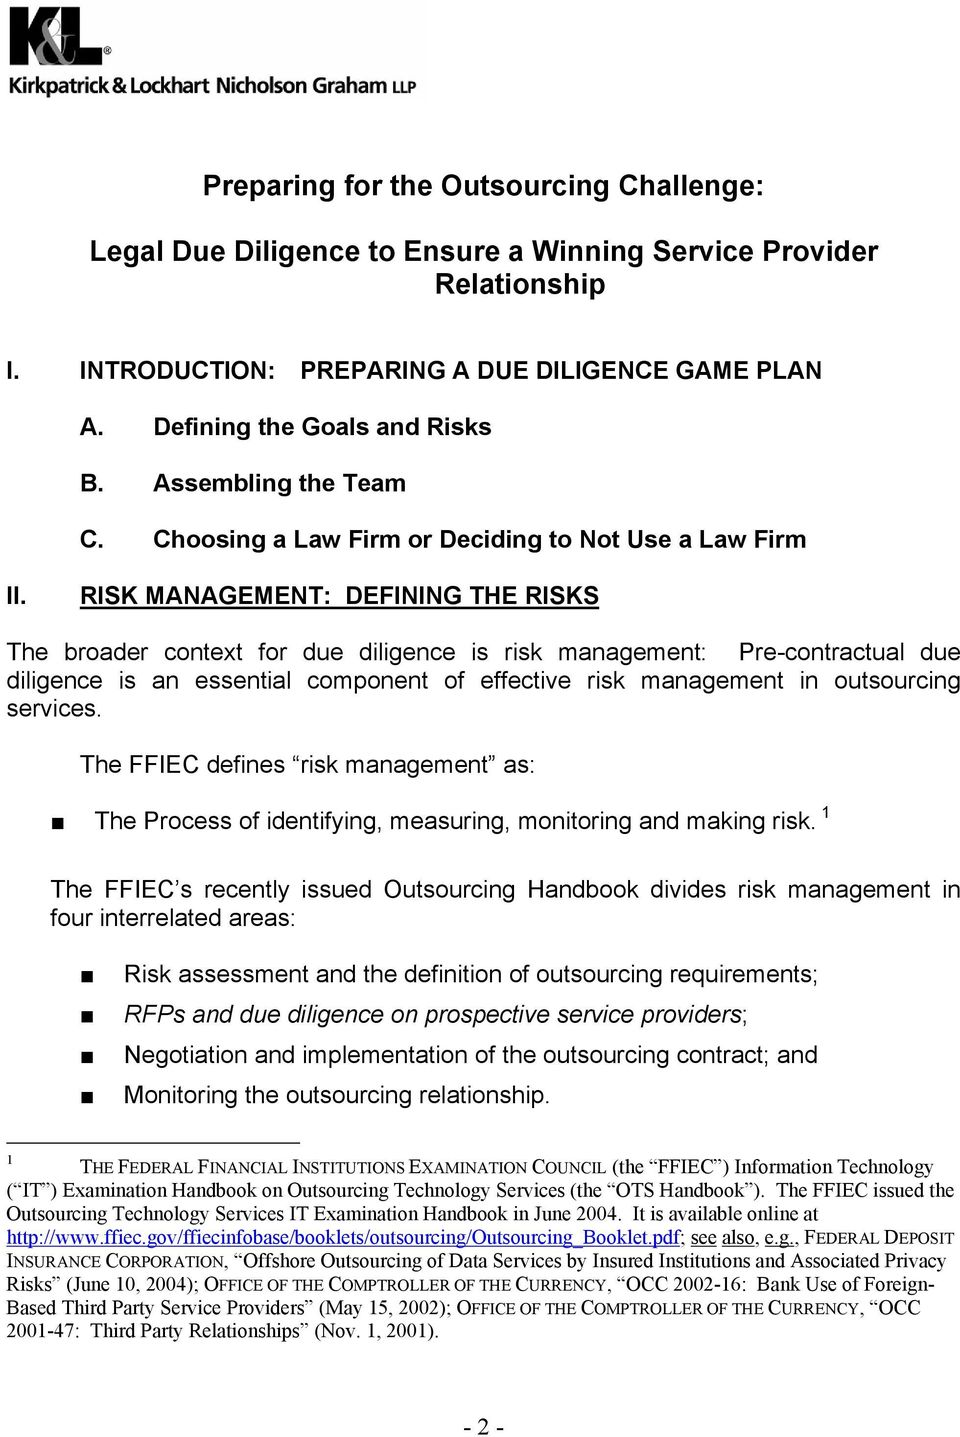 RISK MANAGEMENT: DEFINING THE RISKS The broader context for due diligence is risk management: Pre-contractual due diligence is an essential component of effective risk management in outsourcing